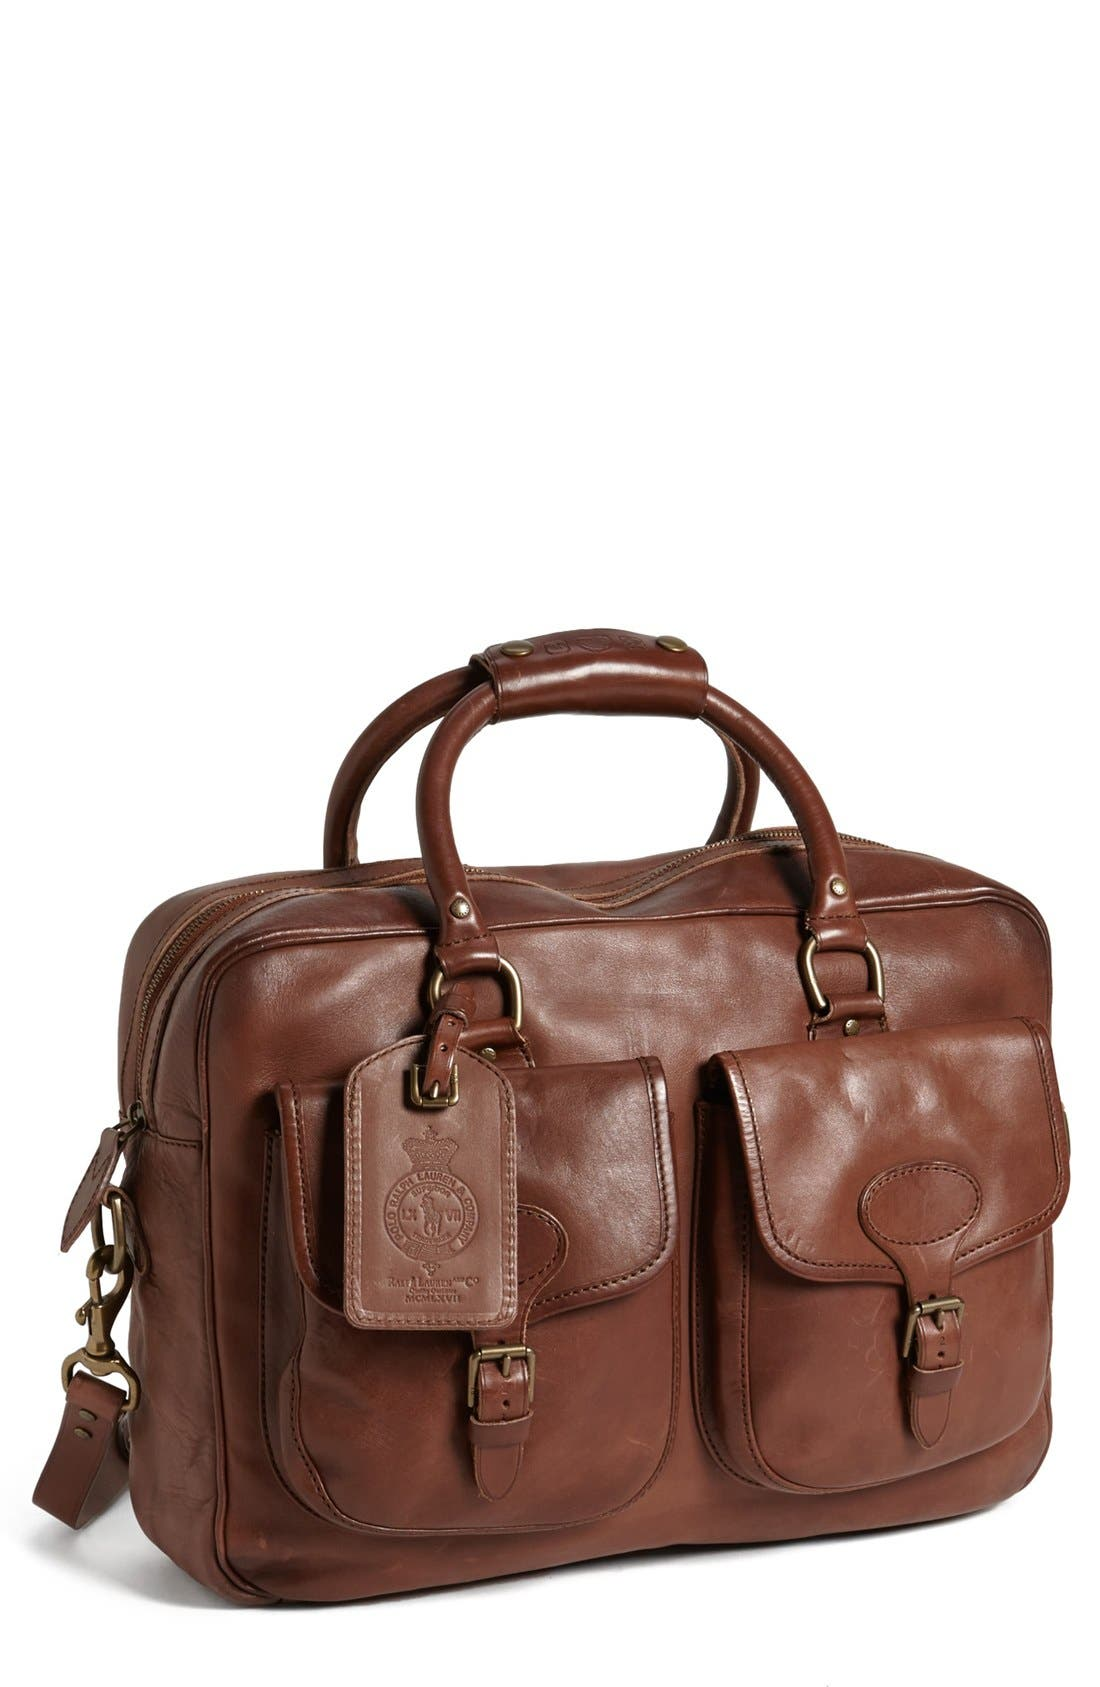 Alternate Image 1 Selected - Polo Ralph Lauren Leather Commuter Bag